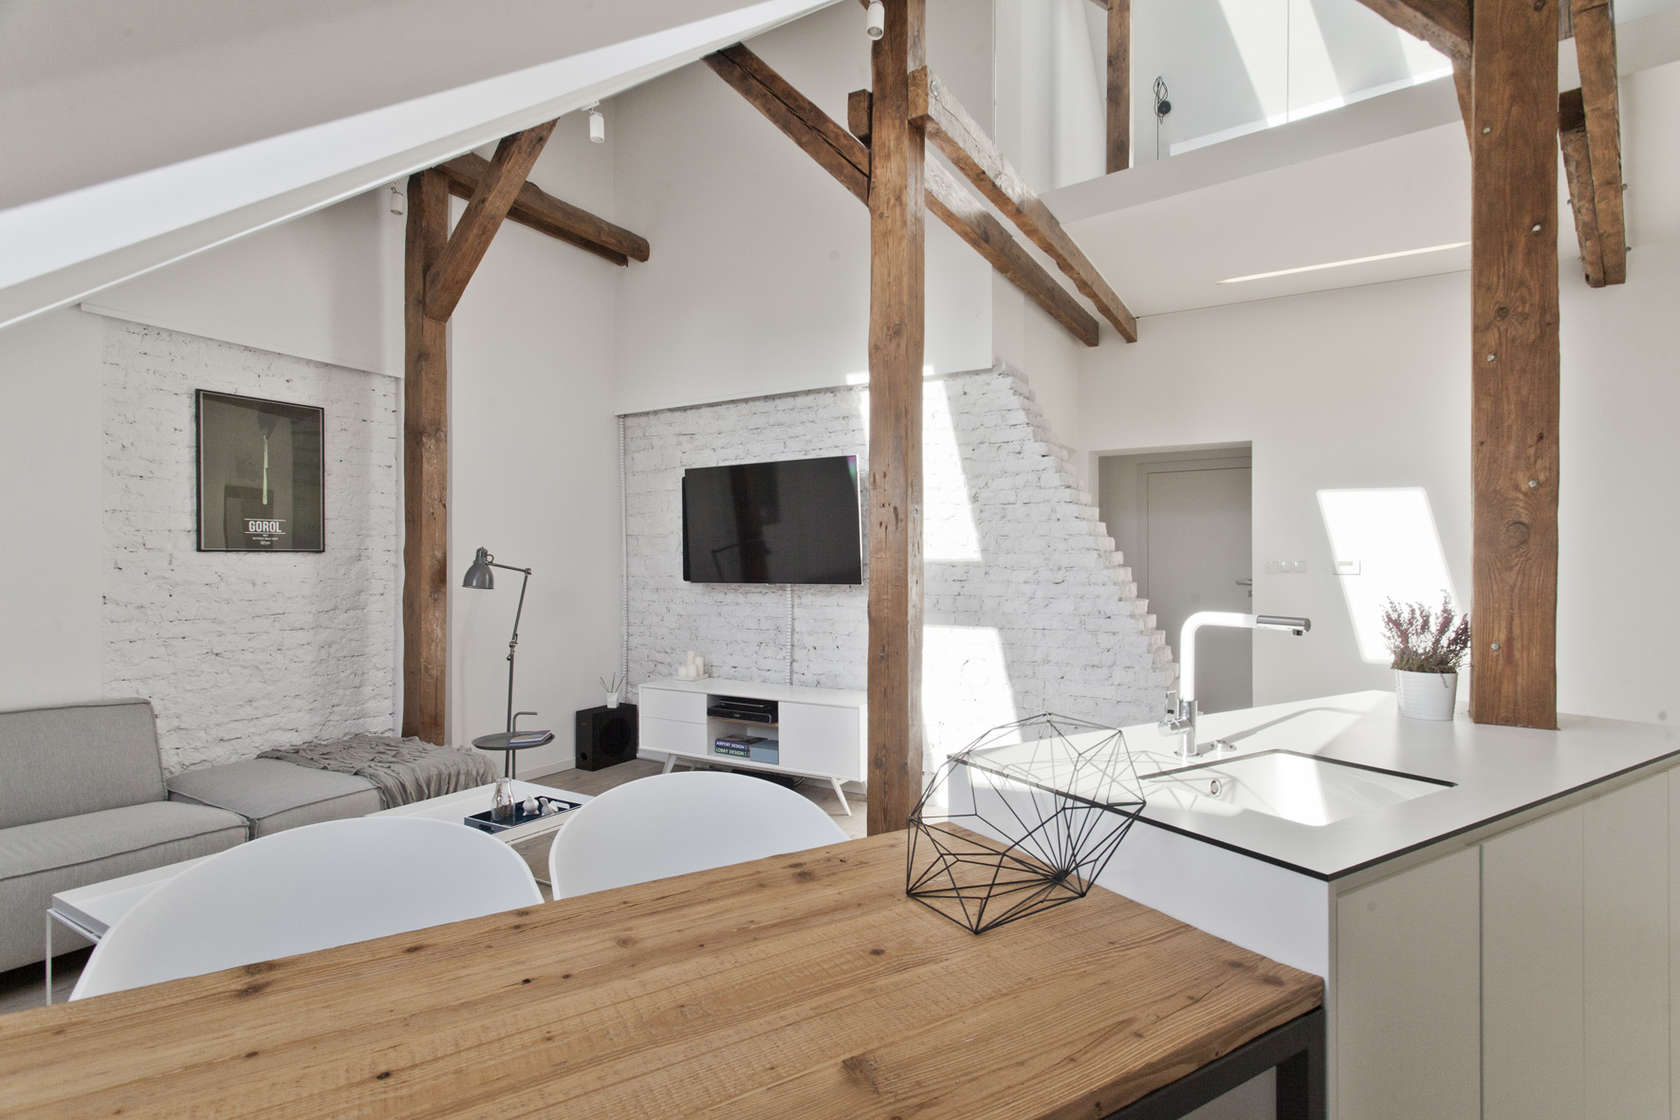 Natural Wood Tables - An old attic is transformed into a gorgeous apartment